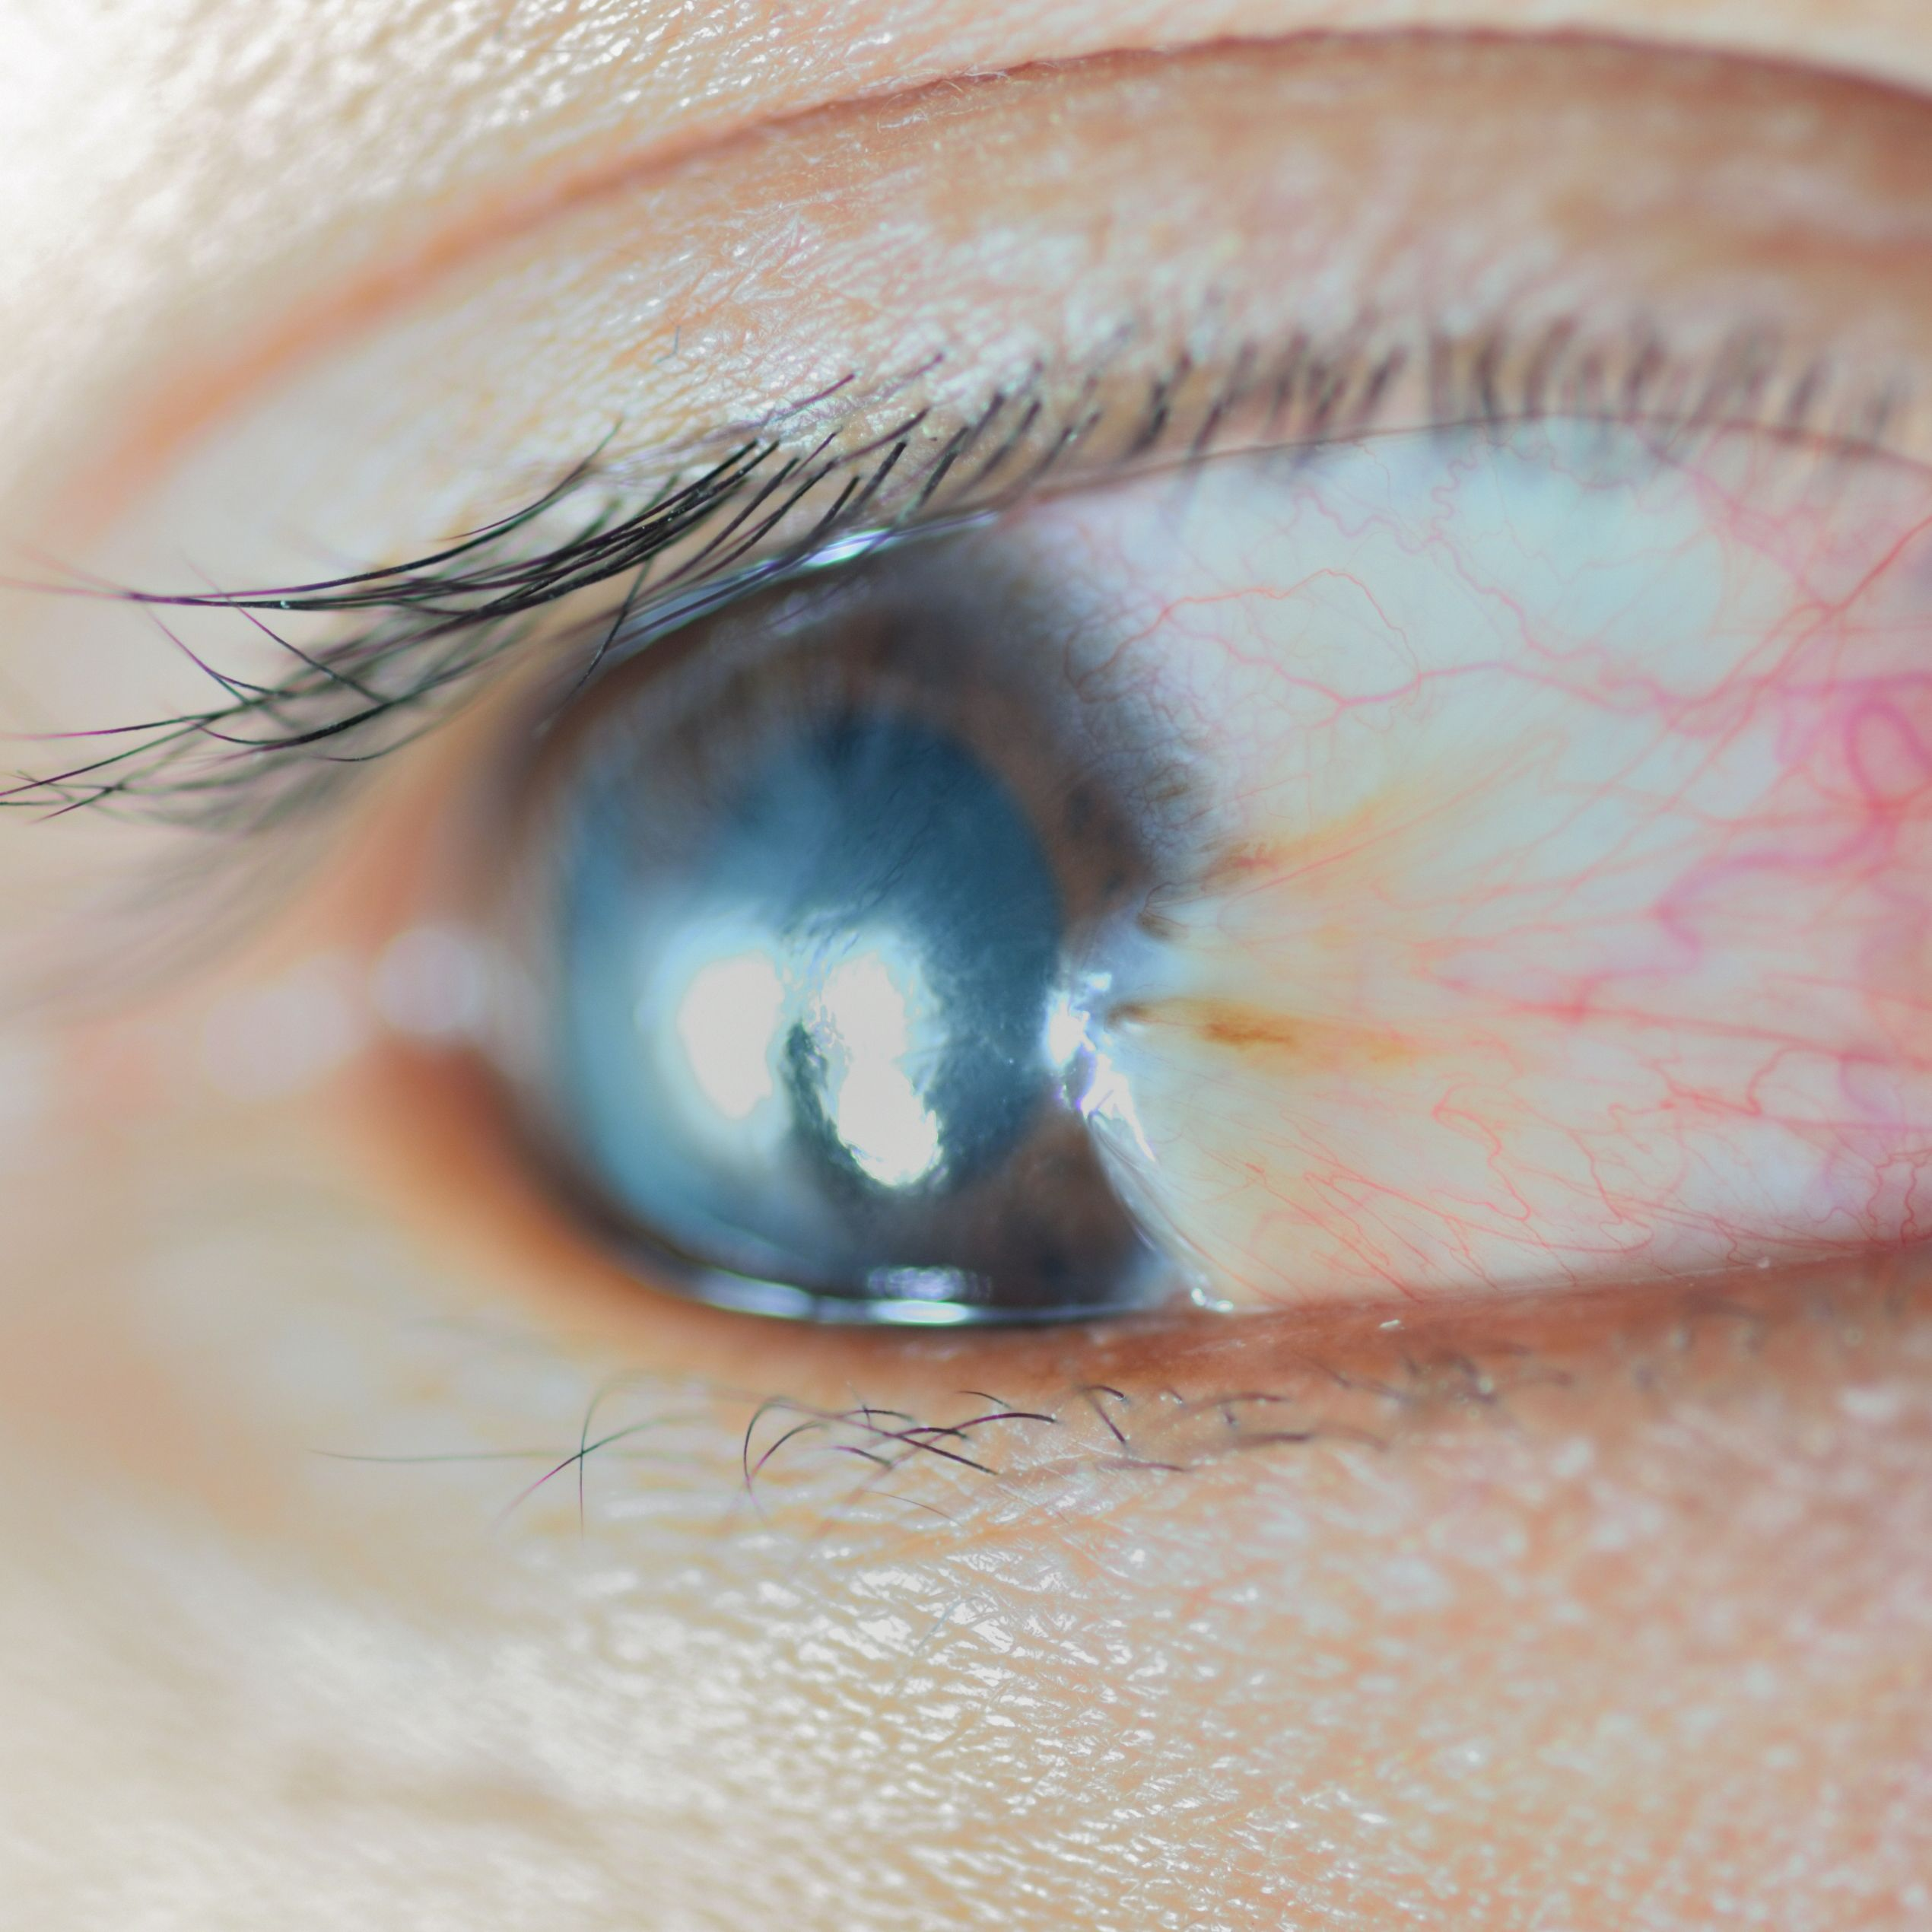 Pterygium Treatment Merrillville In Surfers Eye